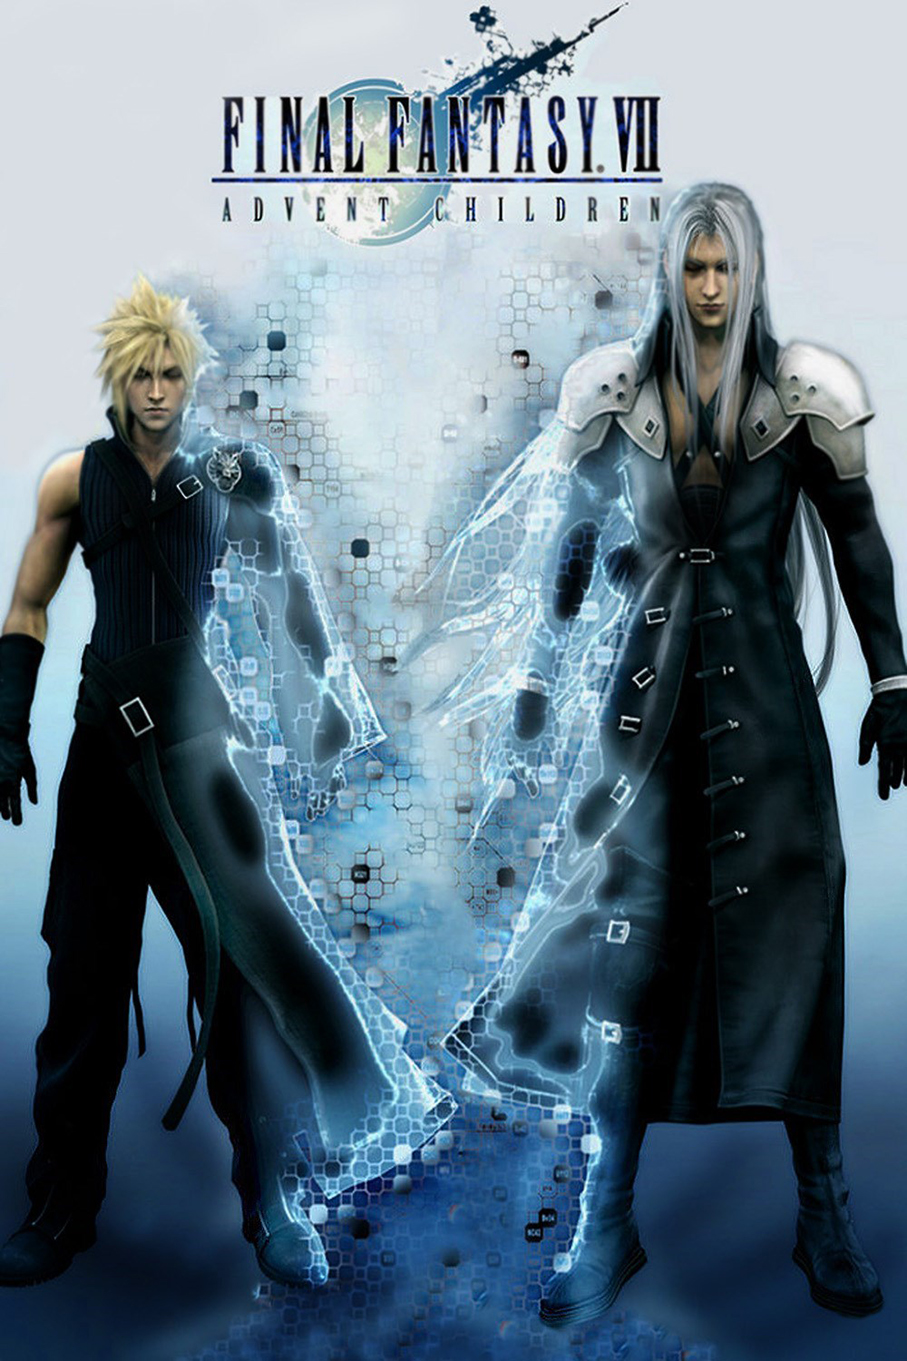 Final Fantasy 7 Advent Children [2005 Japan Movie]